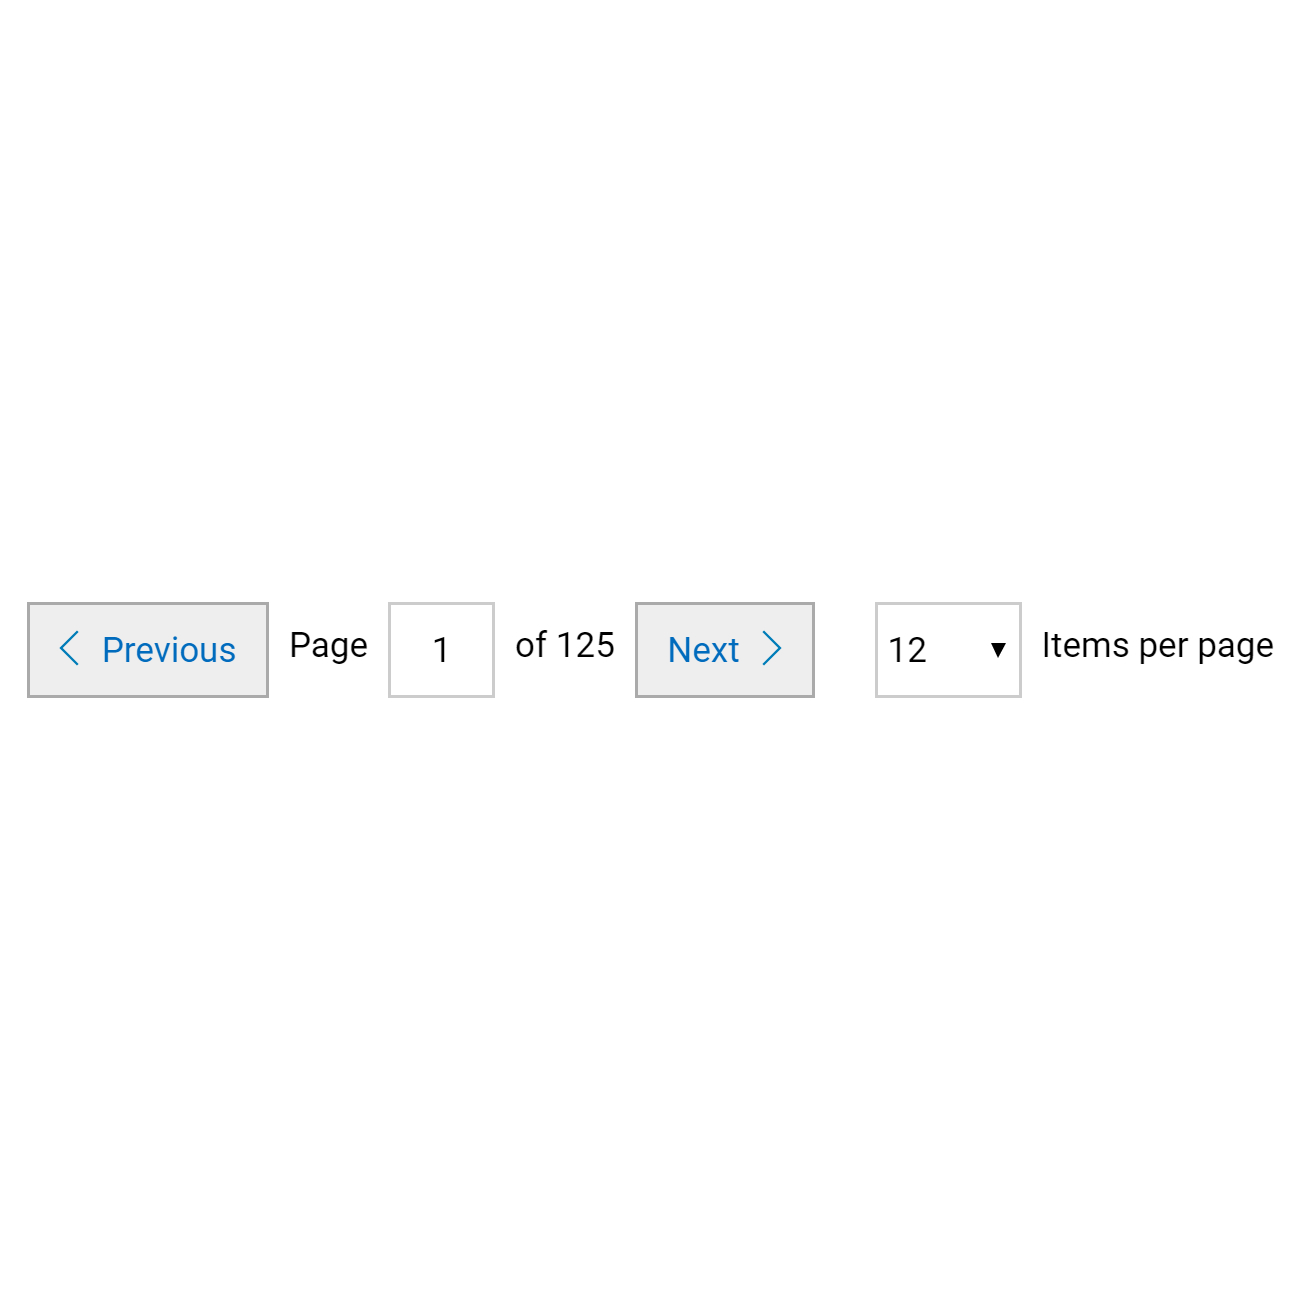 Pagination with Filtering